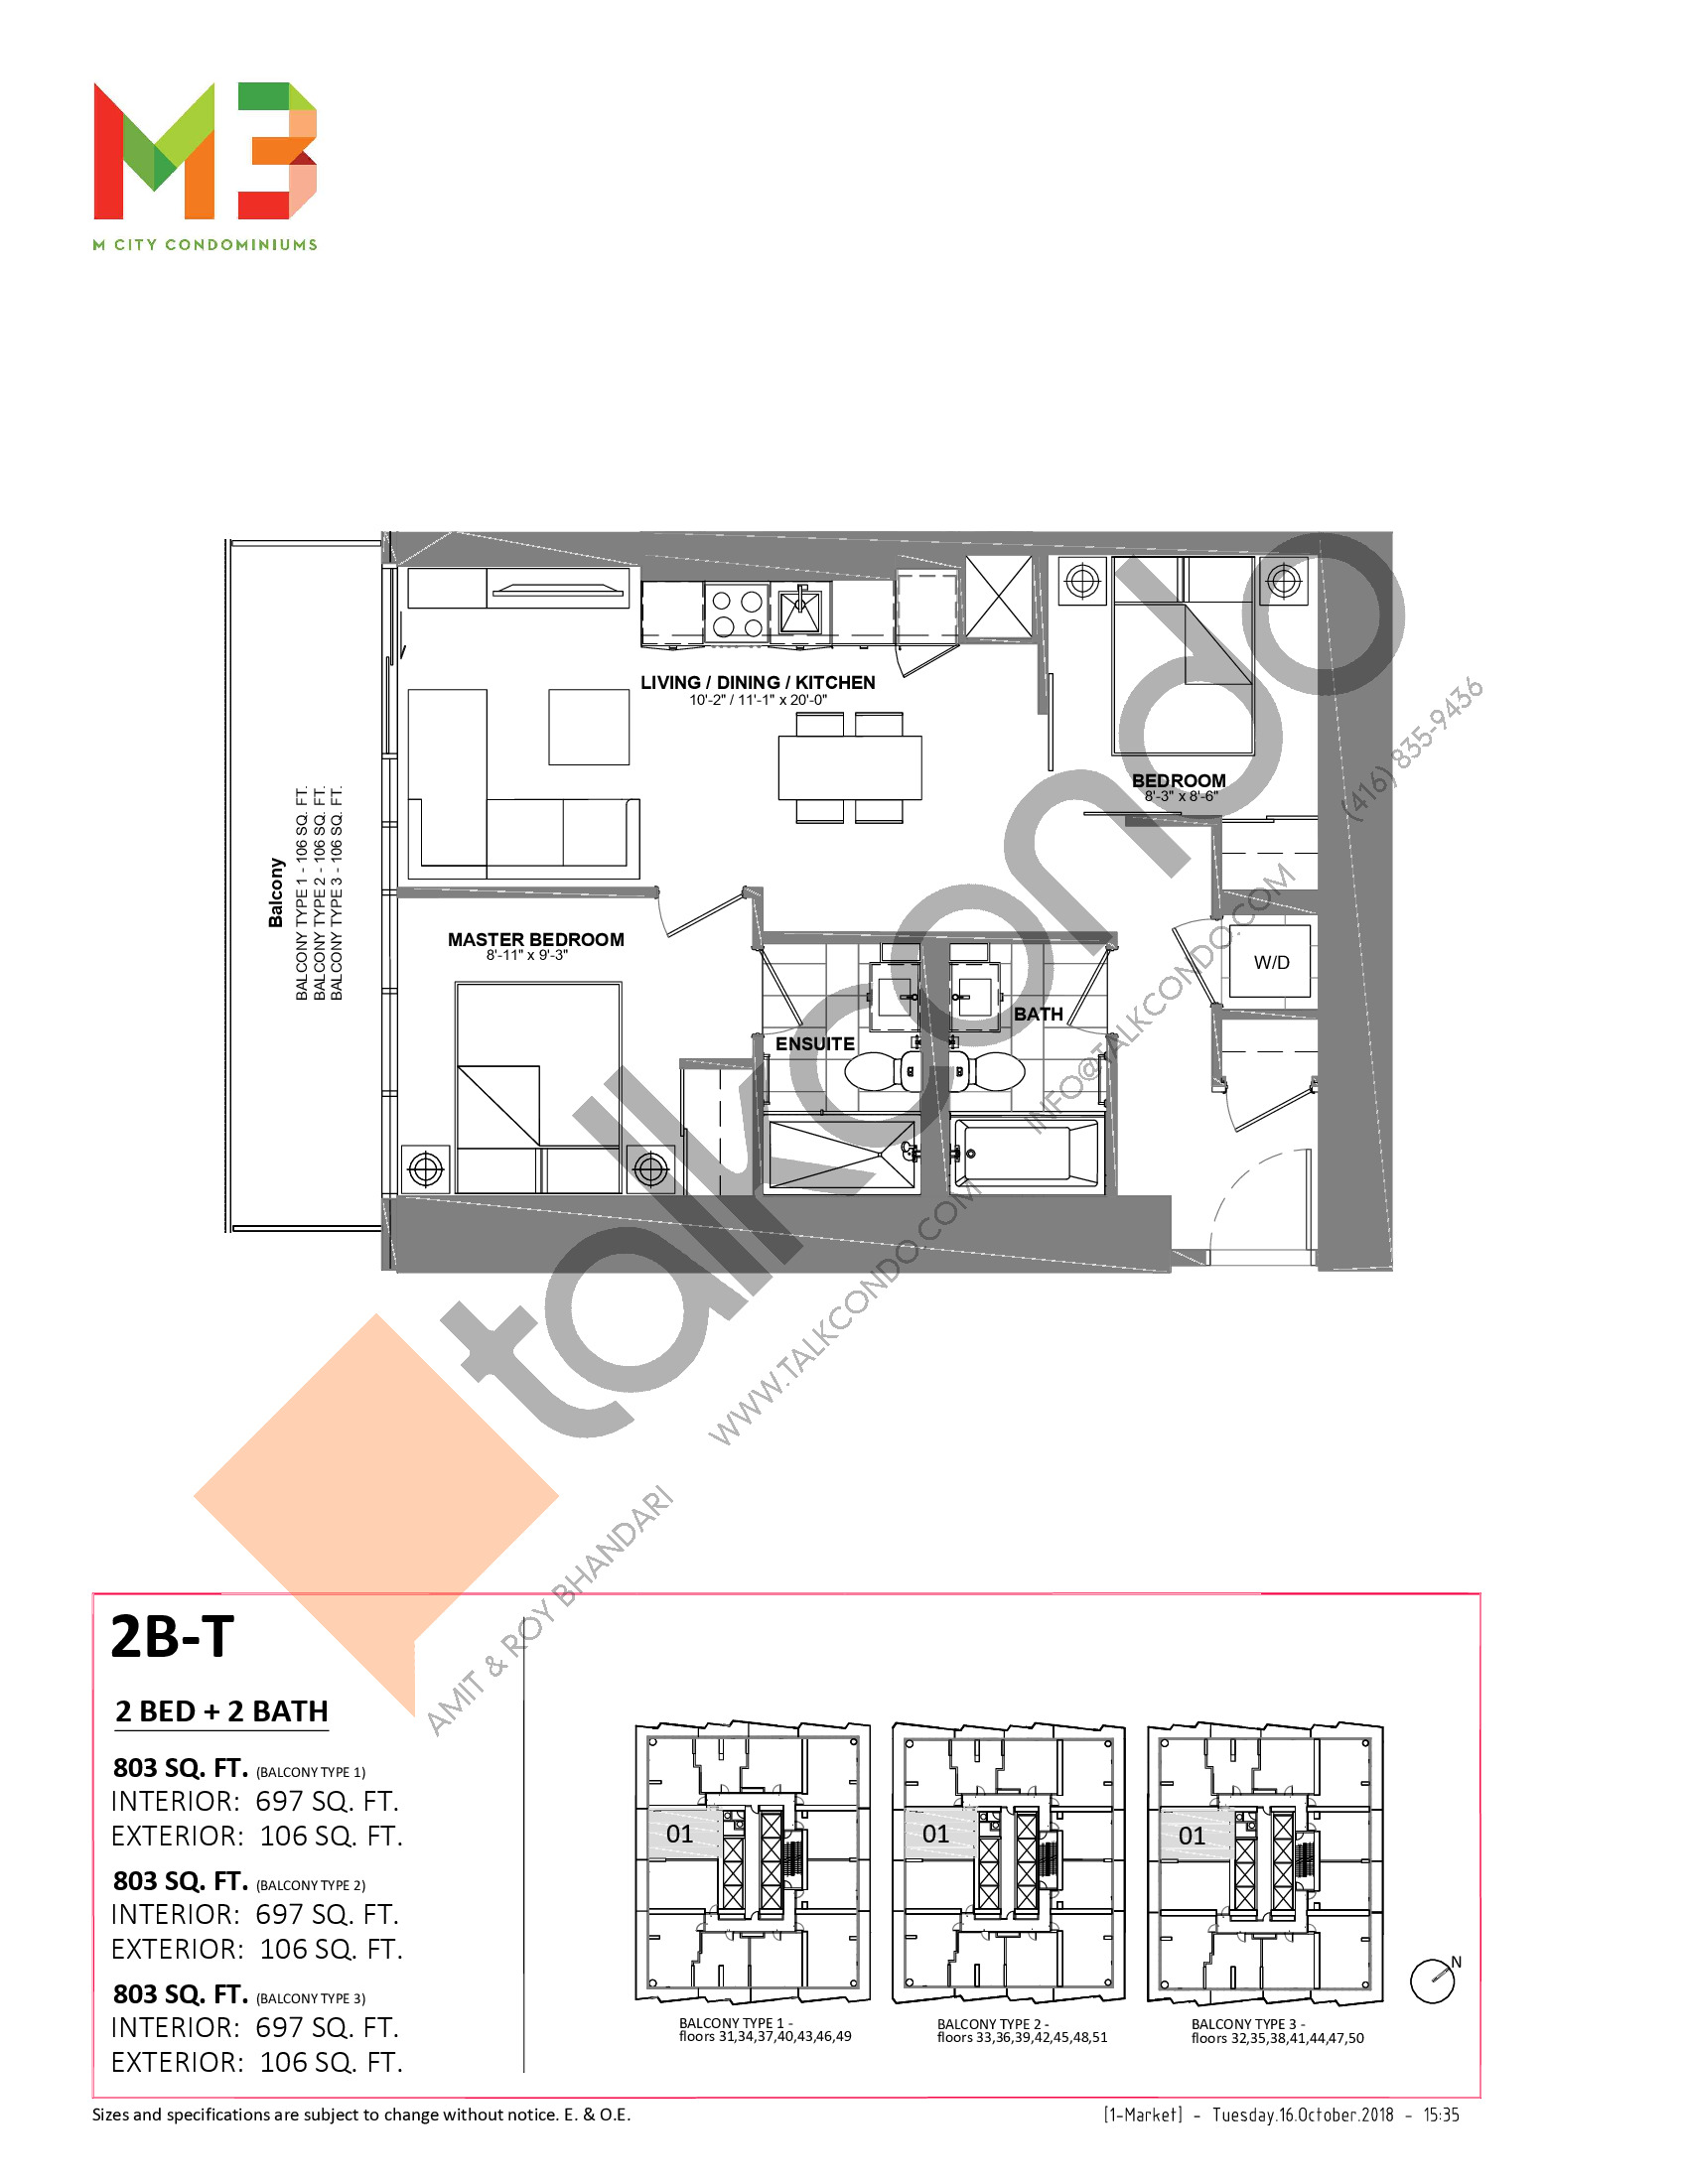 2B-T LOWER Floor Plan at M3 Condos - 697 sq.ft